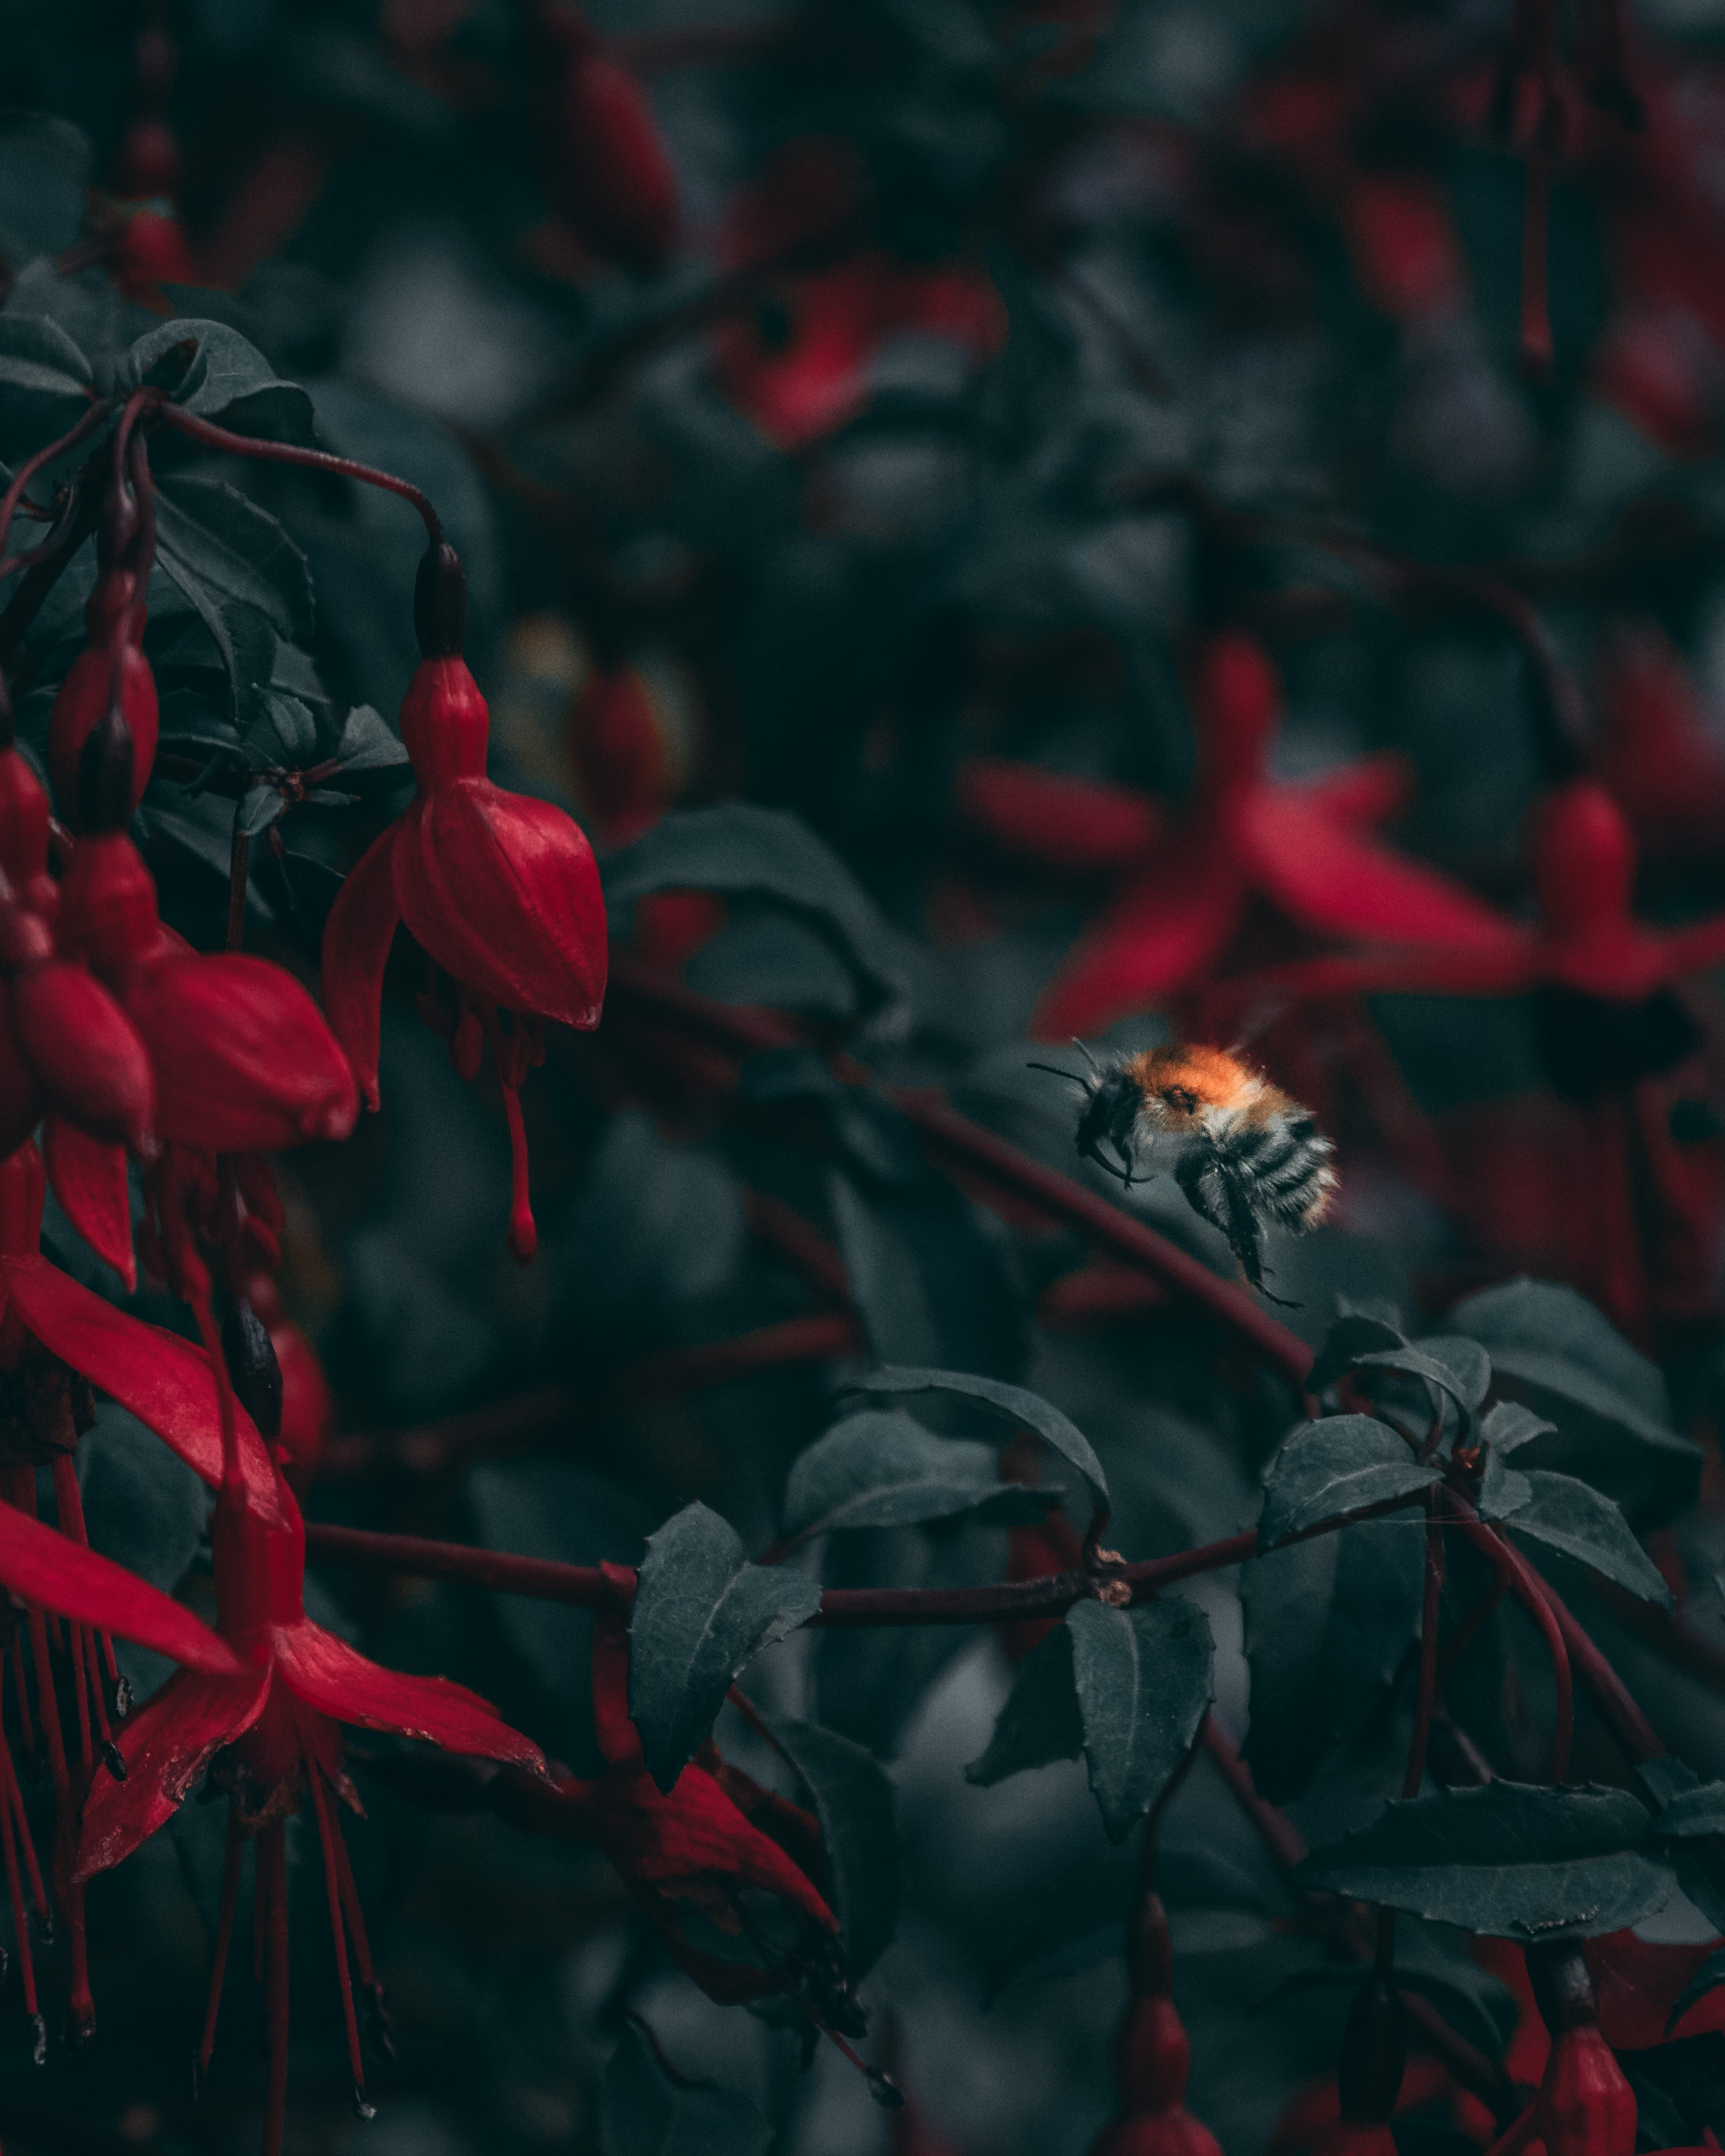 closeup photo of black and red bee taking flight into red petaled flower